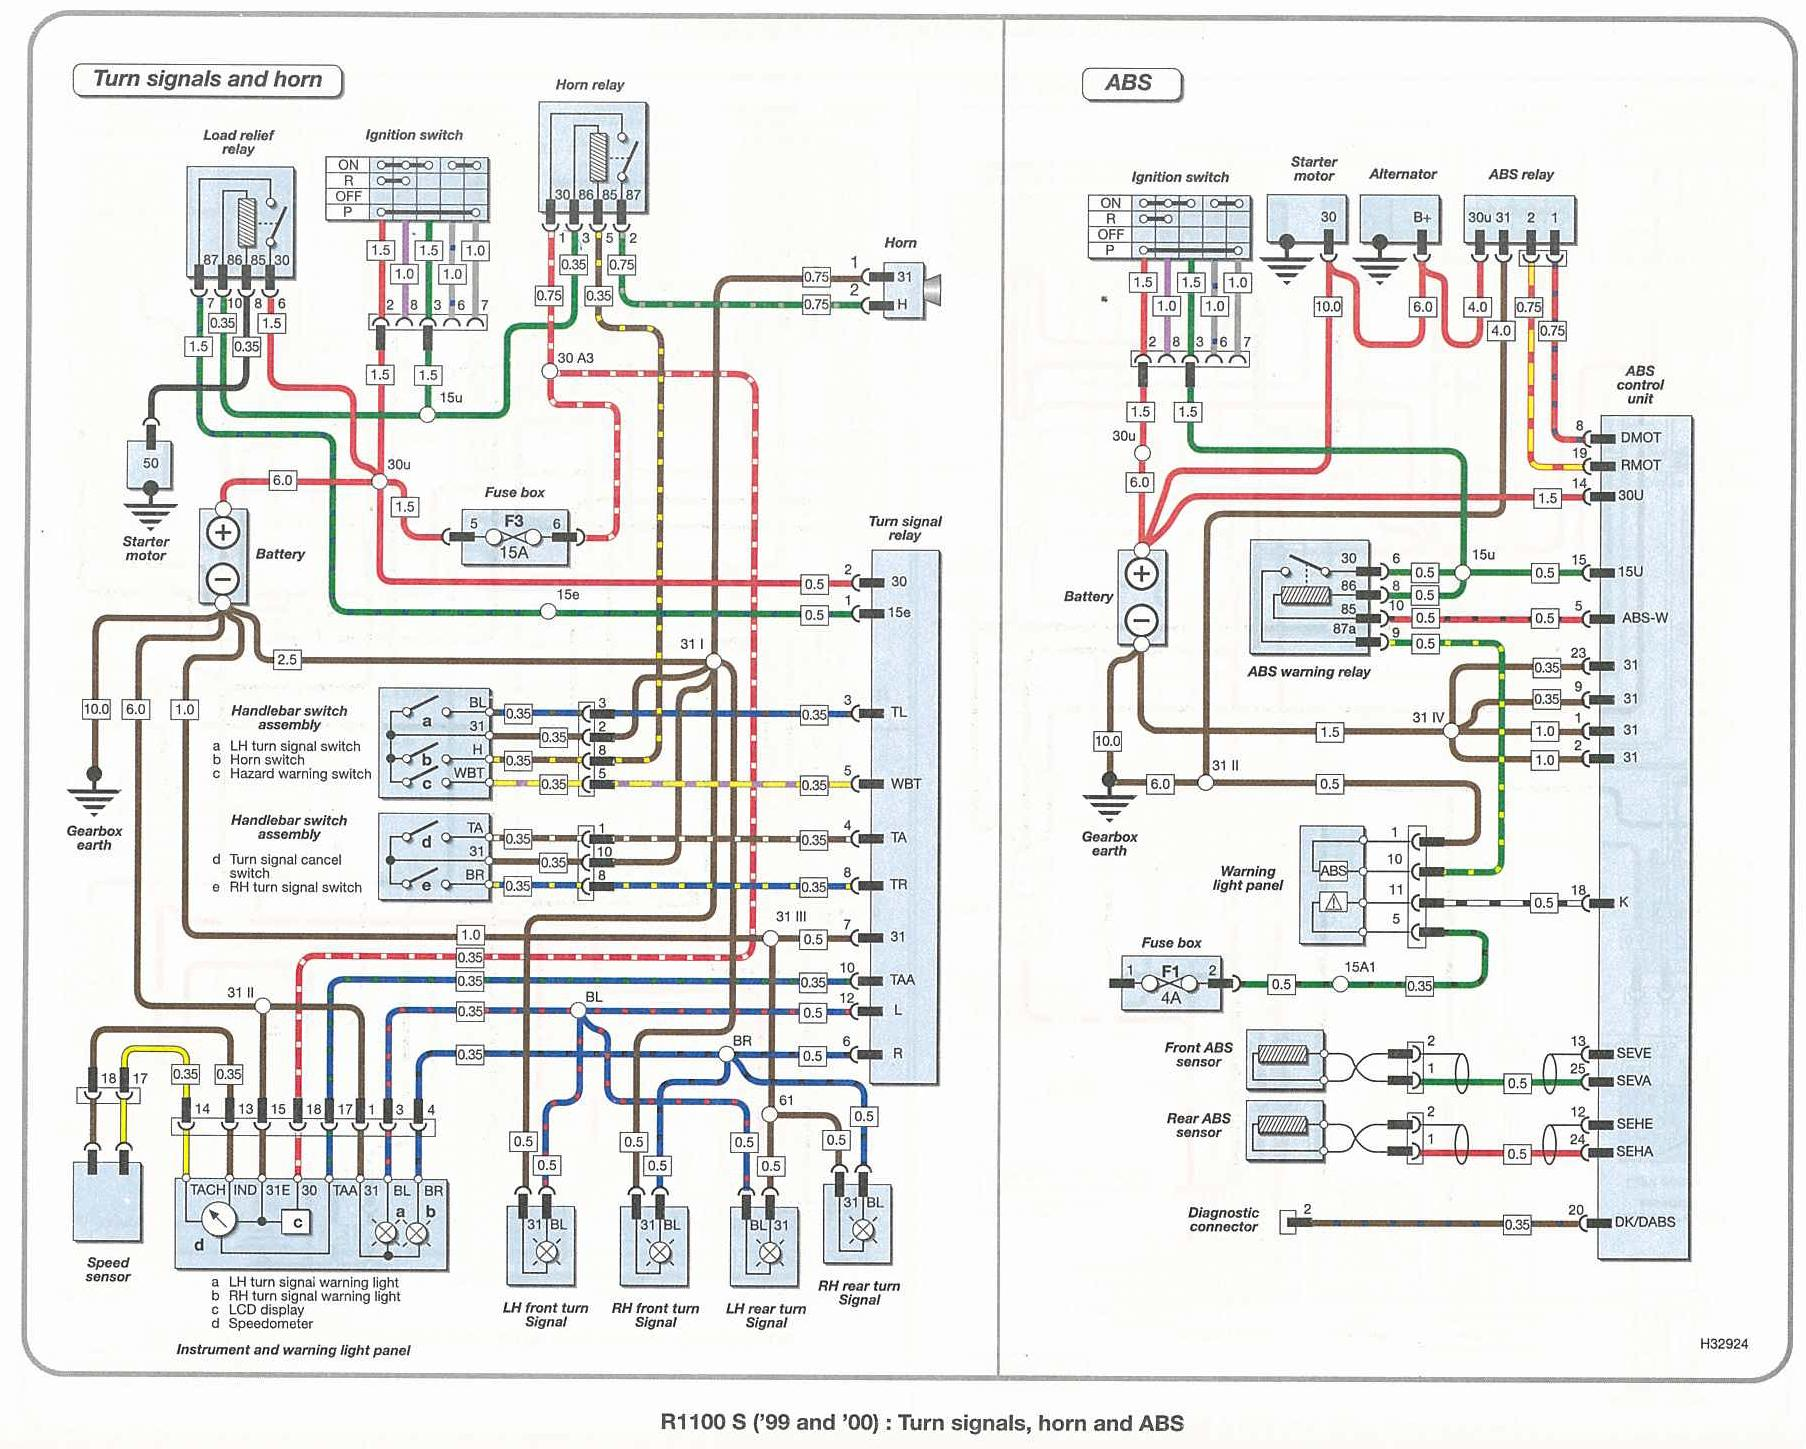 wiring diagram bmw r1100r wiring image wiring diagram bmw r1100s wiring diagrams on wiring diagram bmw r1100r